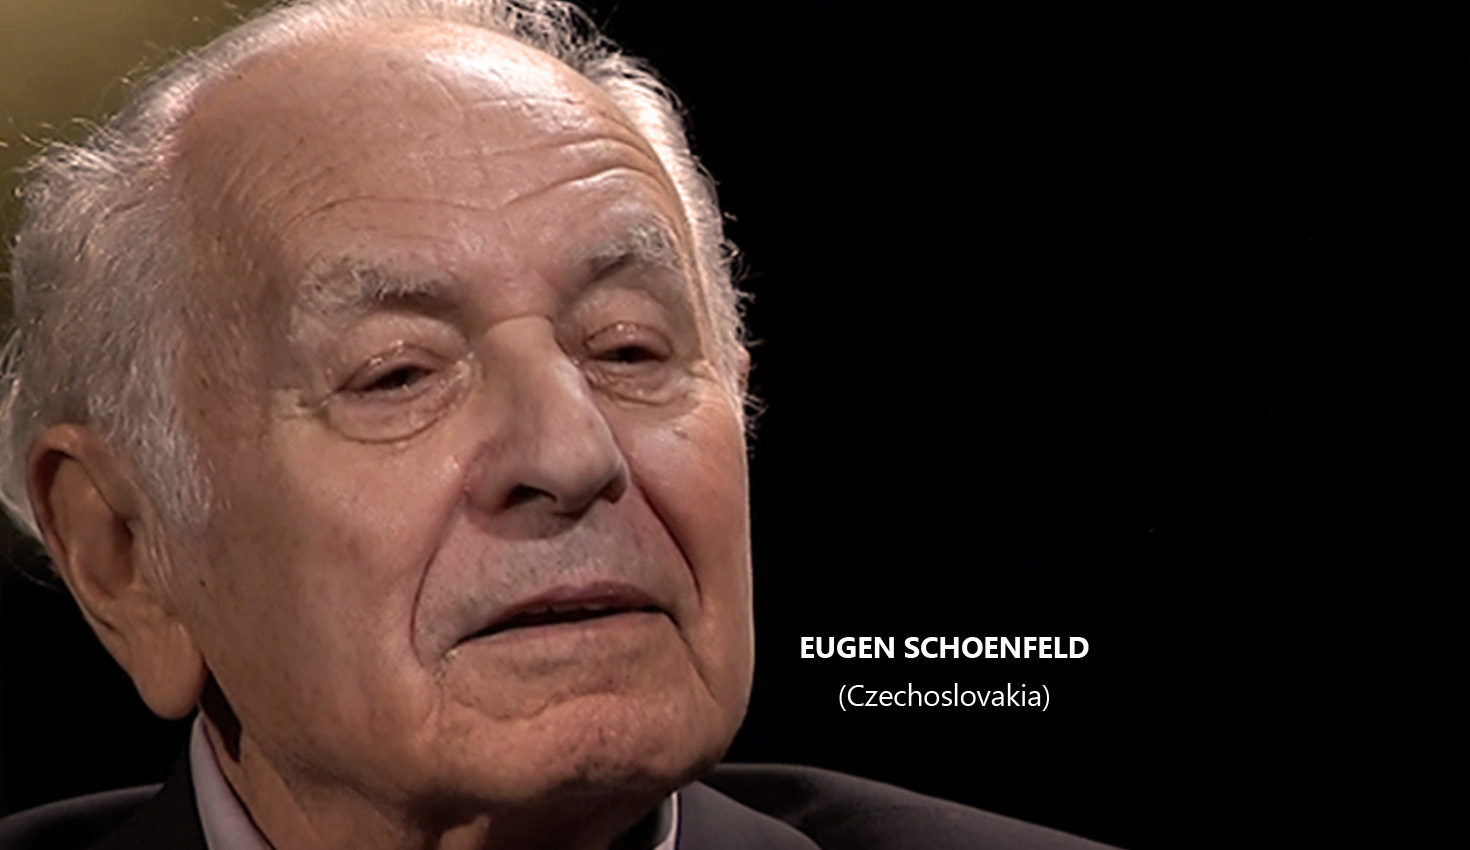 Eugen Schoenfeld (Czechoslovakia): Remarkable Stories from the Holocaust